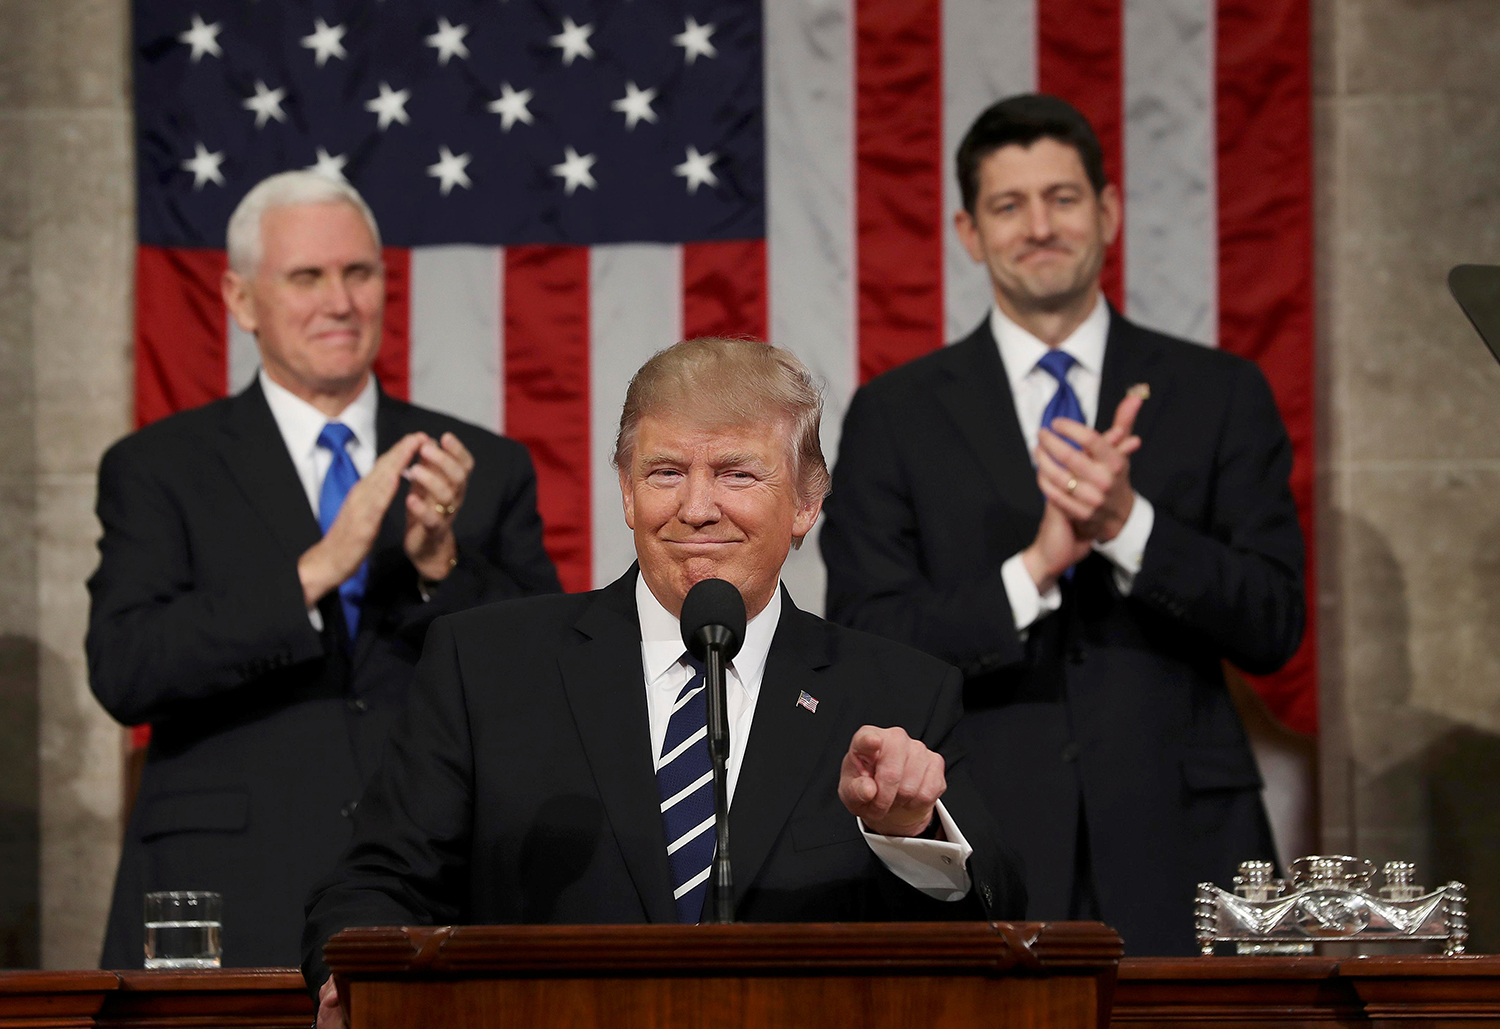 WASHINGTON 2017-03-01 US Vice President Mike Pence (L) and Speaker of the House Paul Ryan (R) applaud as US President Donald J. Trump (C) arrives to deliver his first address to a joint session of Congress from the floor of the House of Representatives in Washington, DC, USA, 28 February 2017. REUTERS/Jim Lo Scalzo TPX IMAGES OF THE DAY Photo: / REUTERS / TT / kod 72000